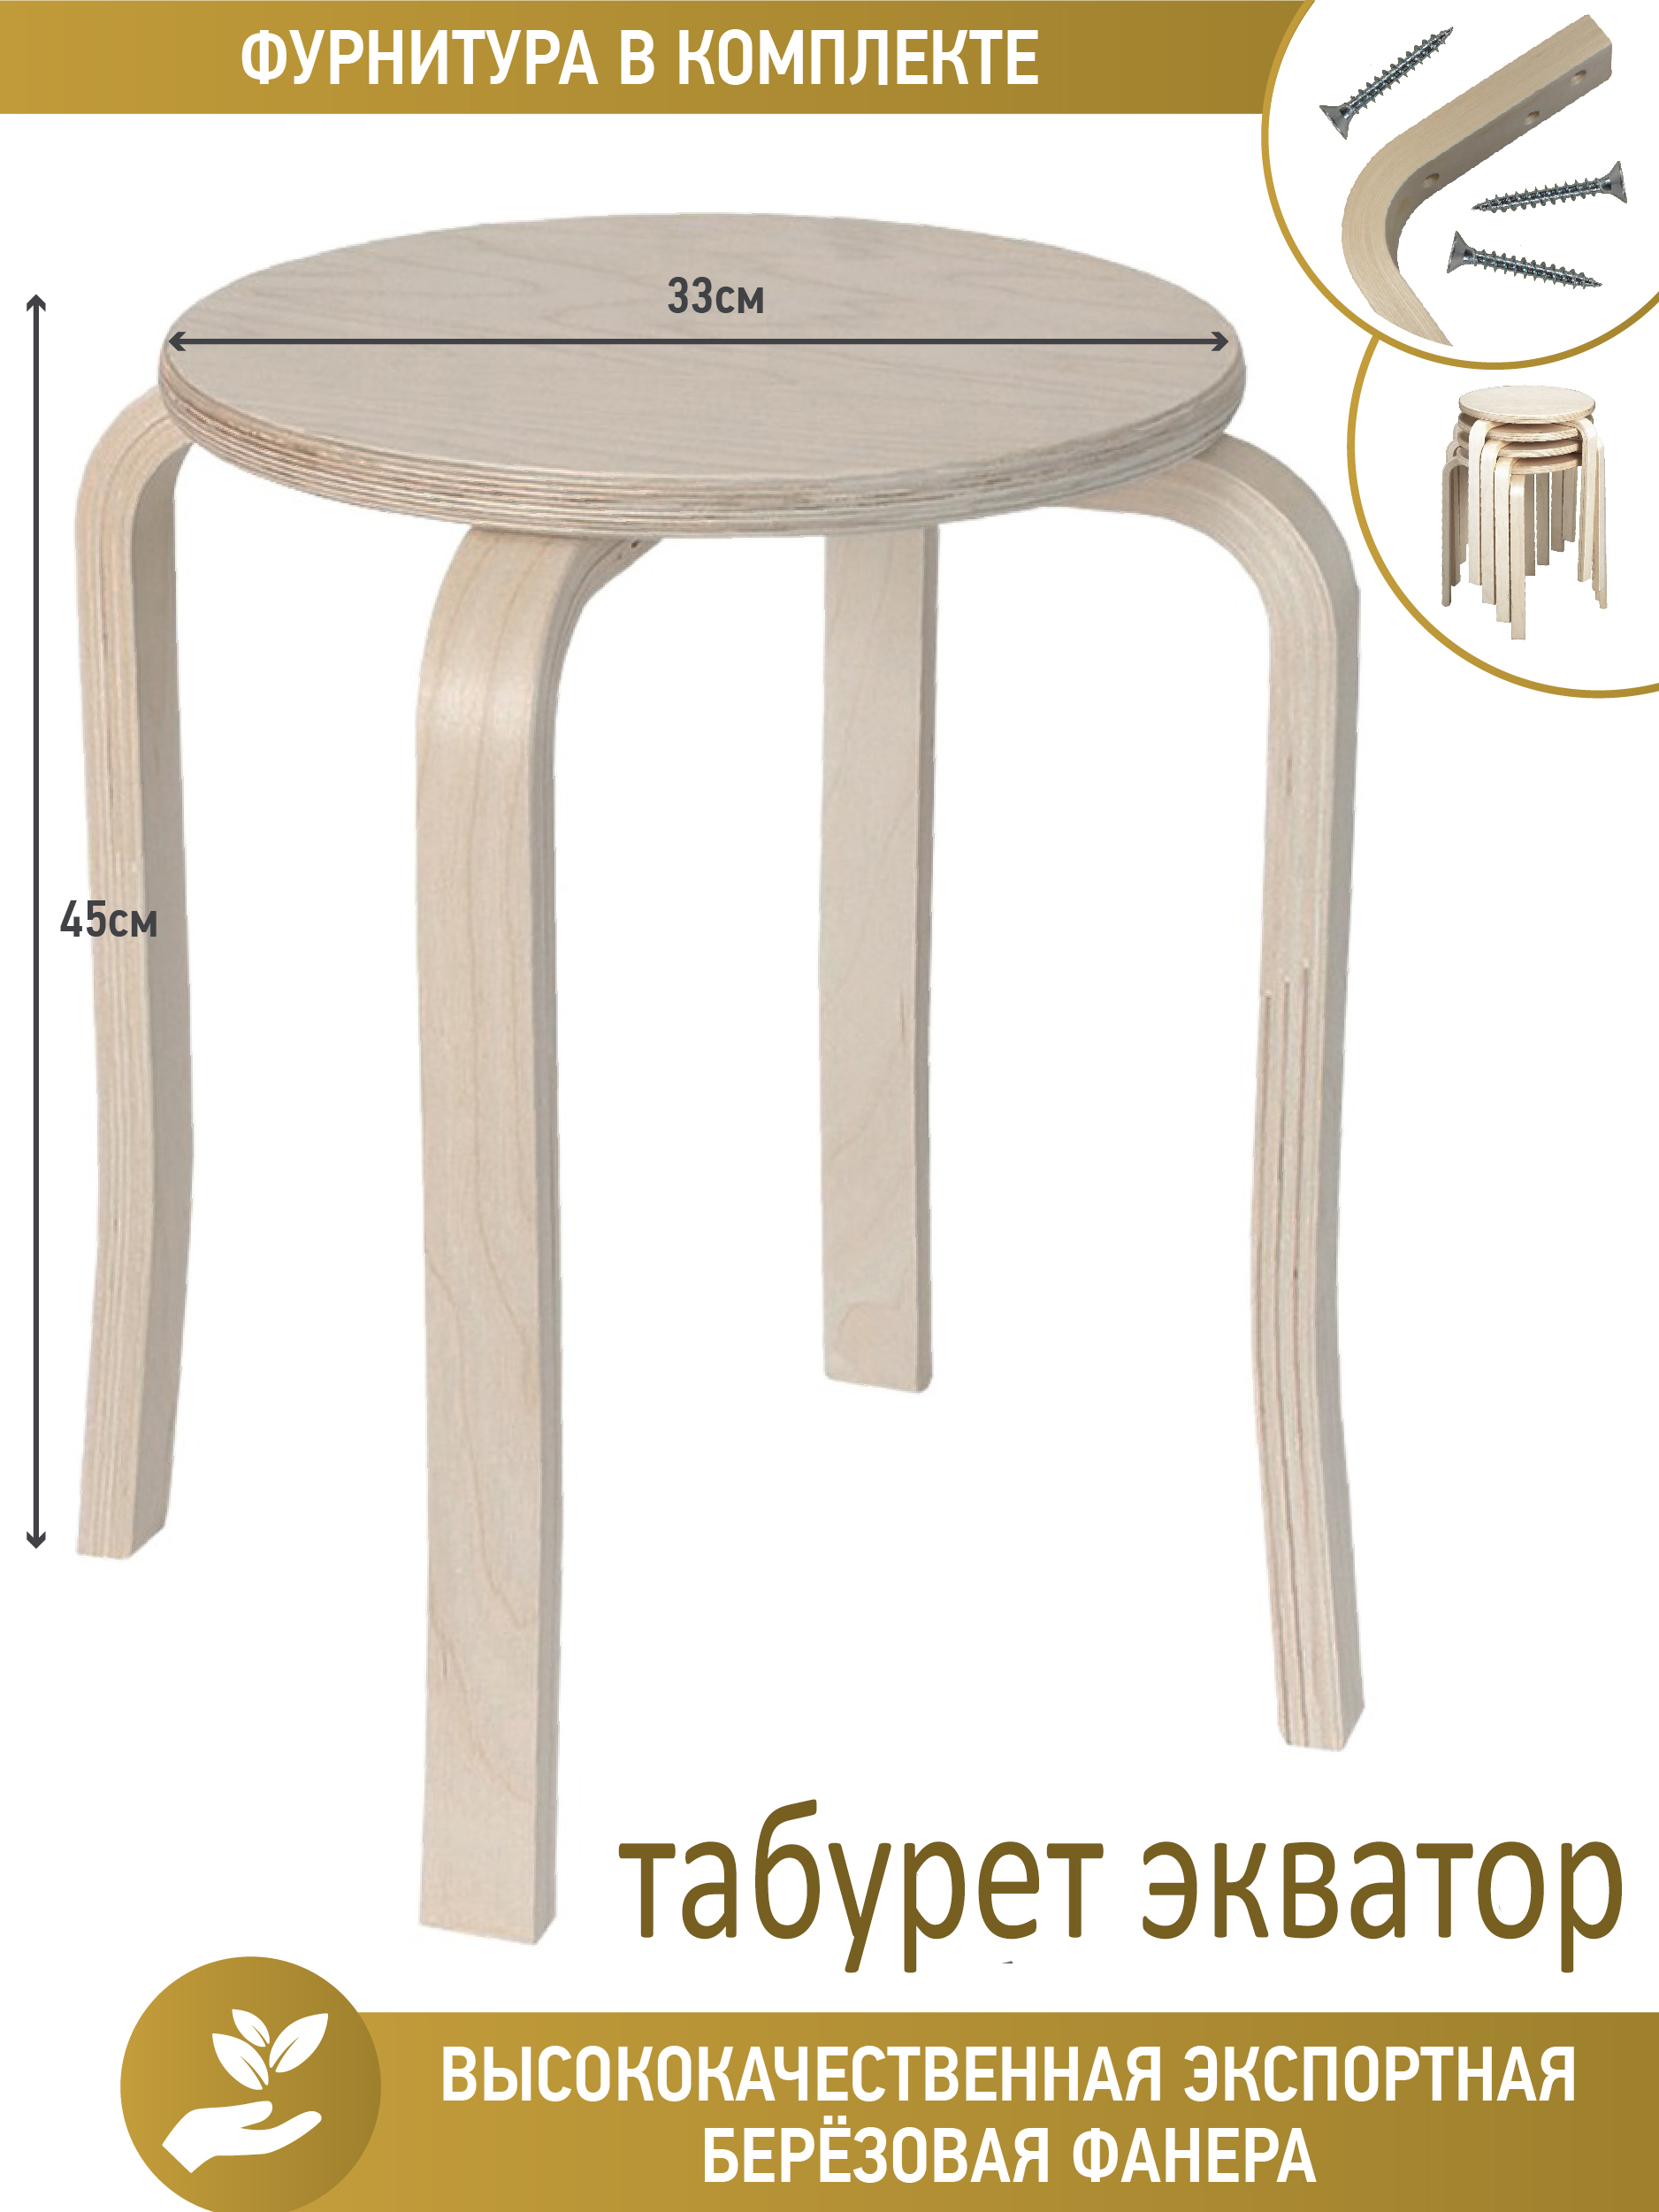 <p>We buy plywood stools or legs for stools, an approximate purchase volume of 3000-5000 pieces per month. The price for a stool in a package should be no more than 260 rubles and for legs no more than 15 rubles per piece. A sample photo of the product is attached in the application.<br />